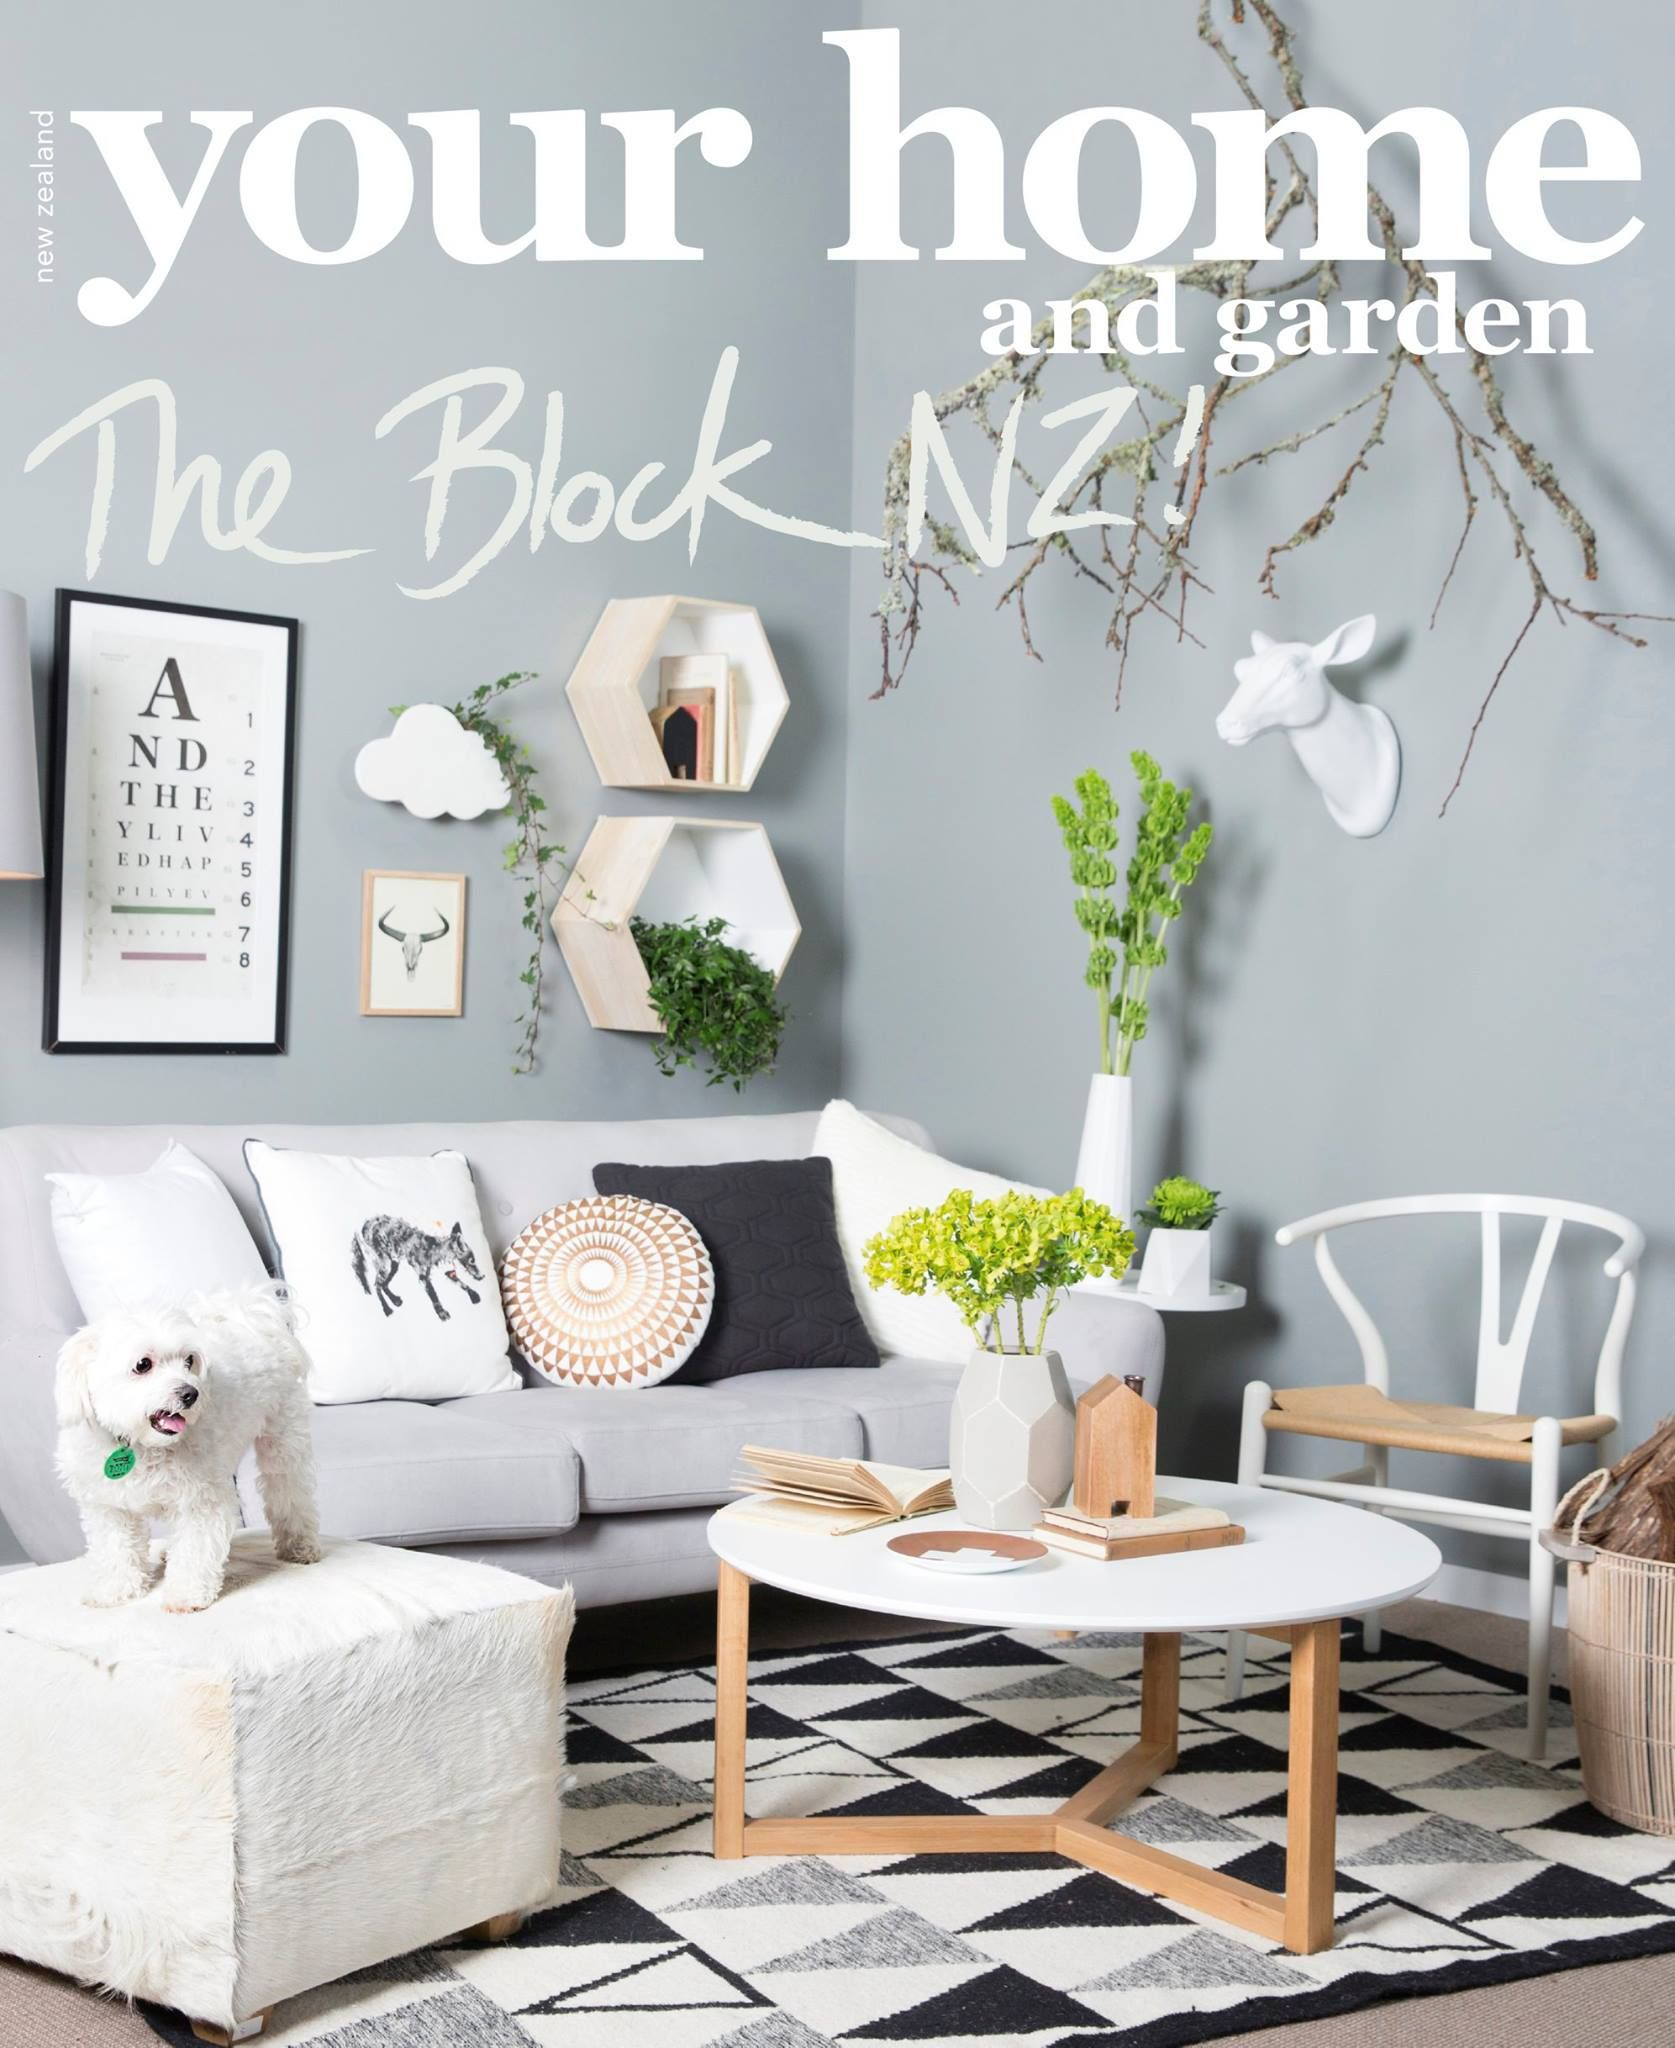 Jo Damos New Nordic Your Home And Garden Magazine Cover